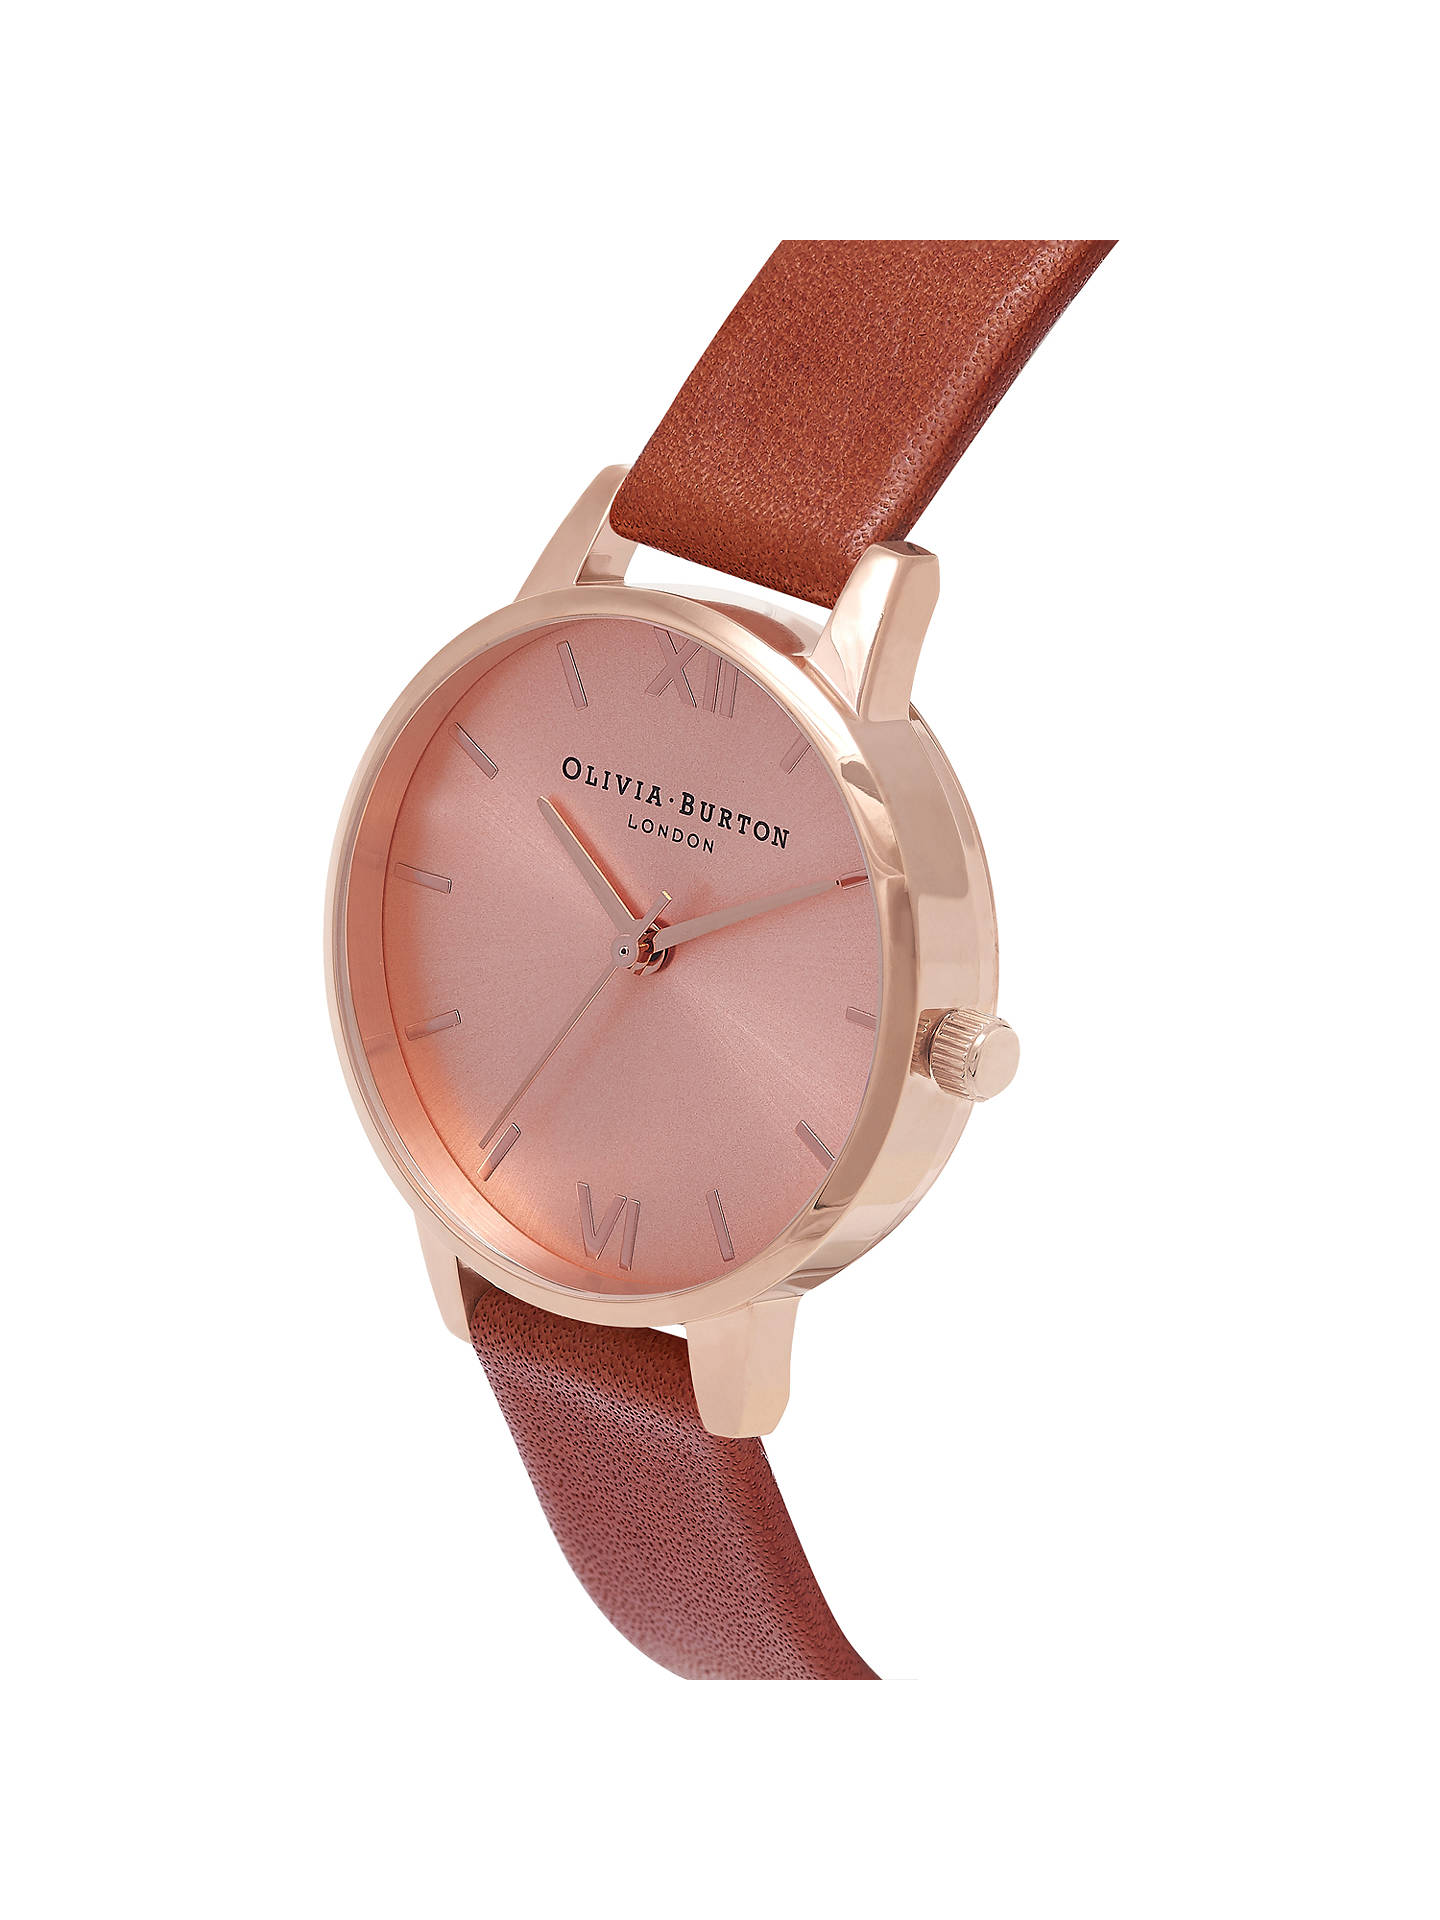 BuyOlivia Burton OB14MD22 Women's Midi Dial Leather Strap Watch, Tan/Gold OB14MD22 Online at johnlewis.com